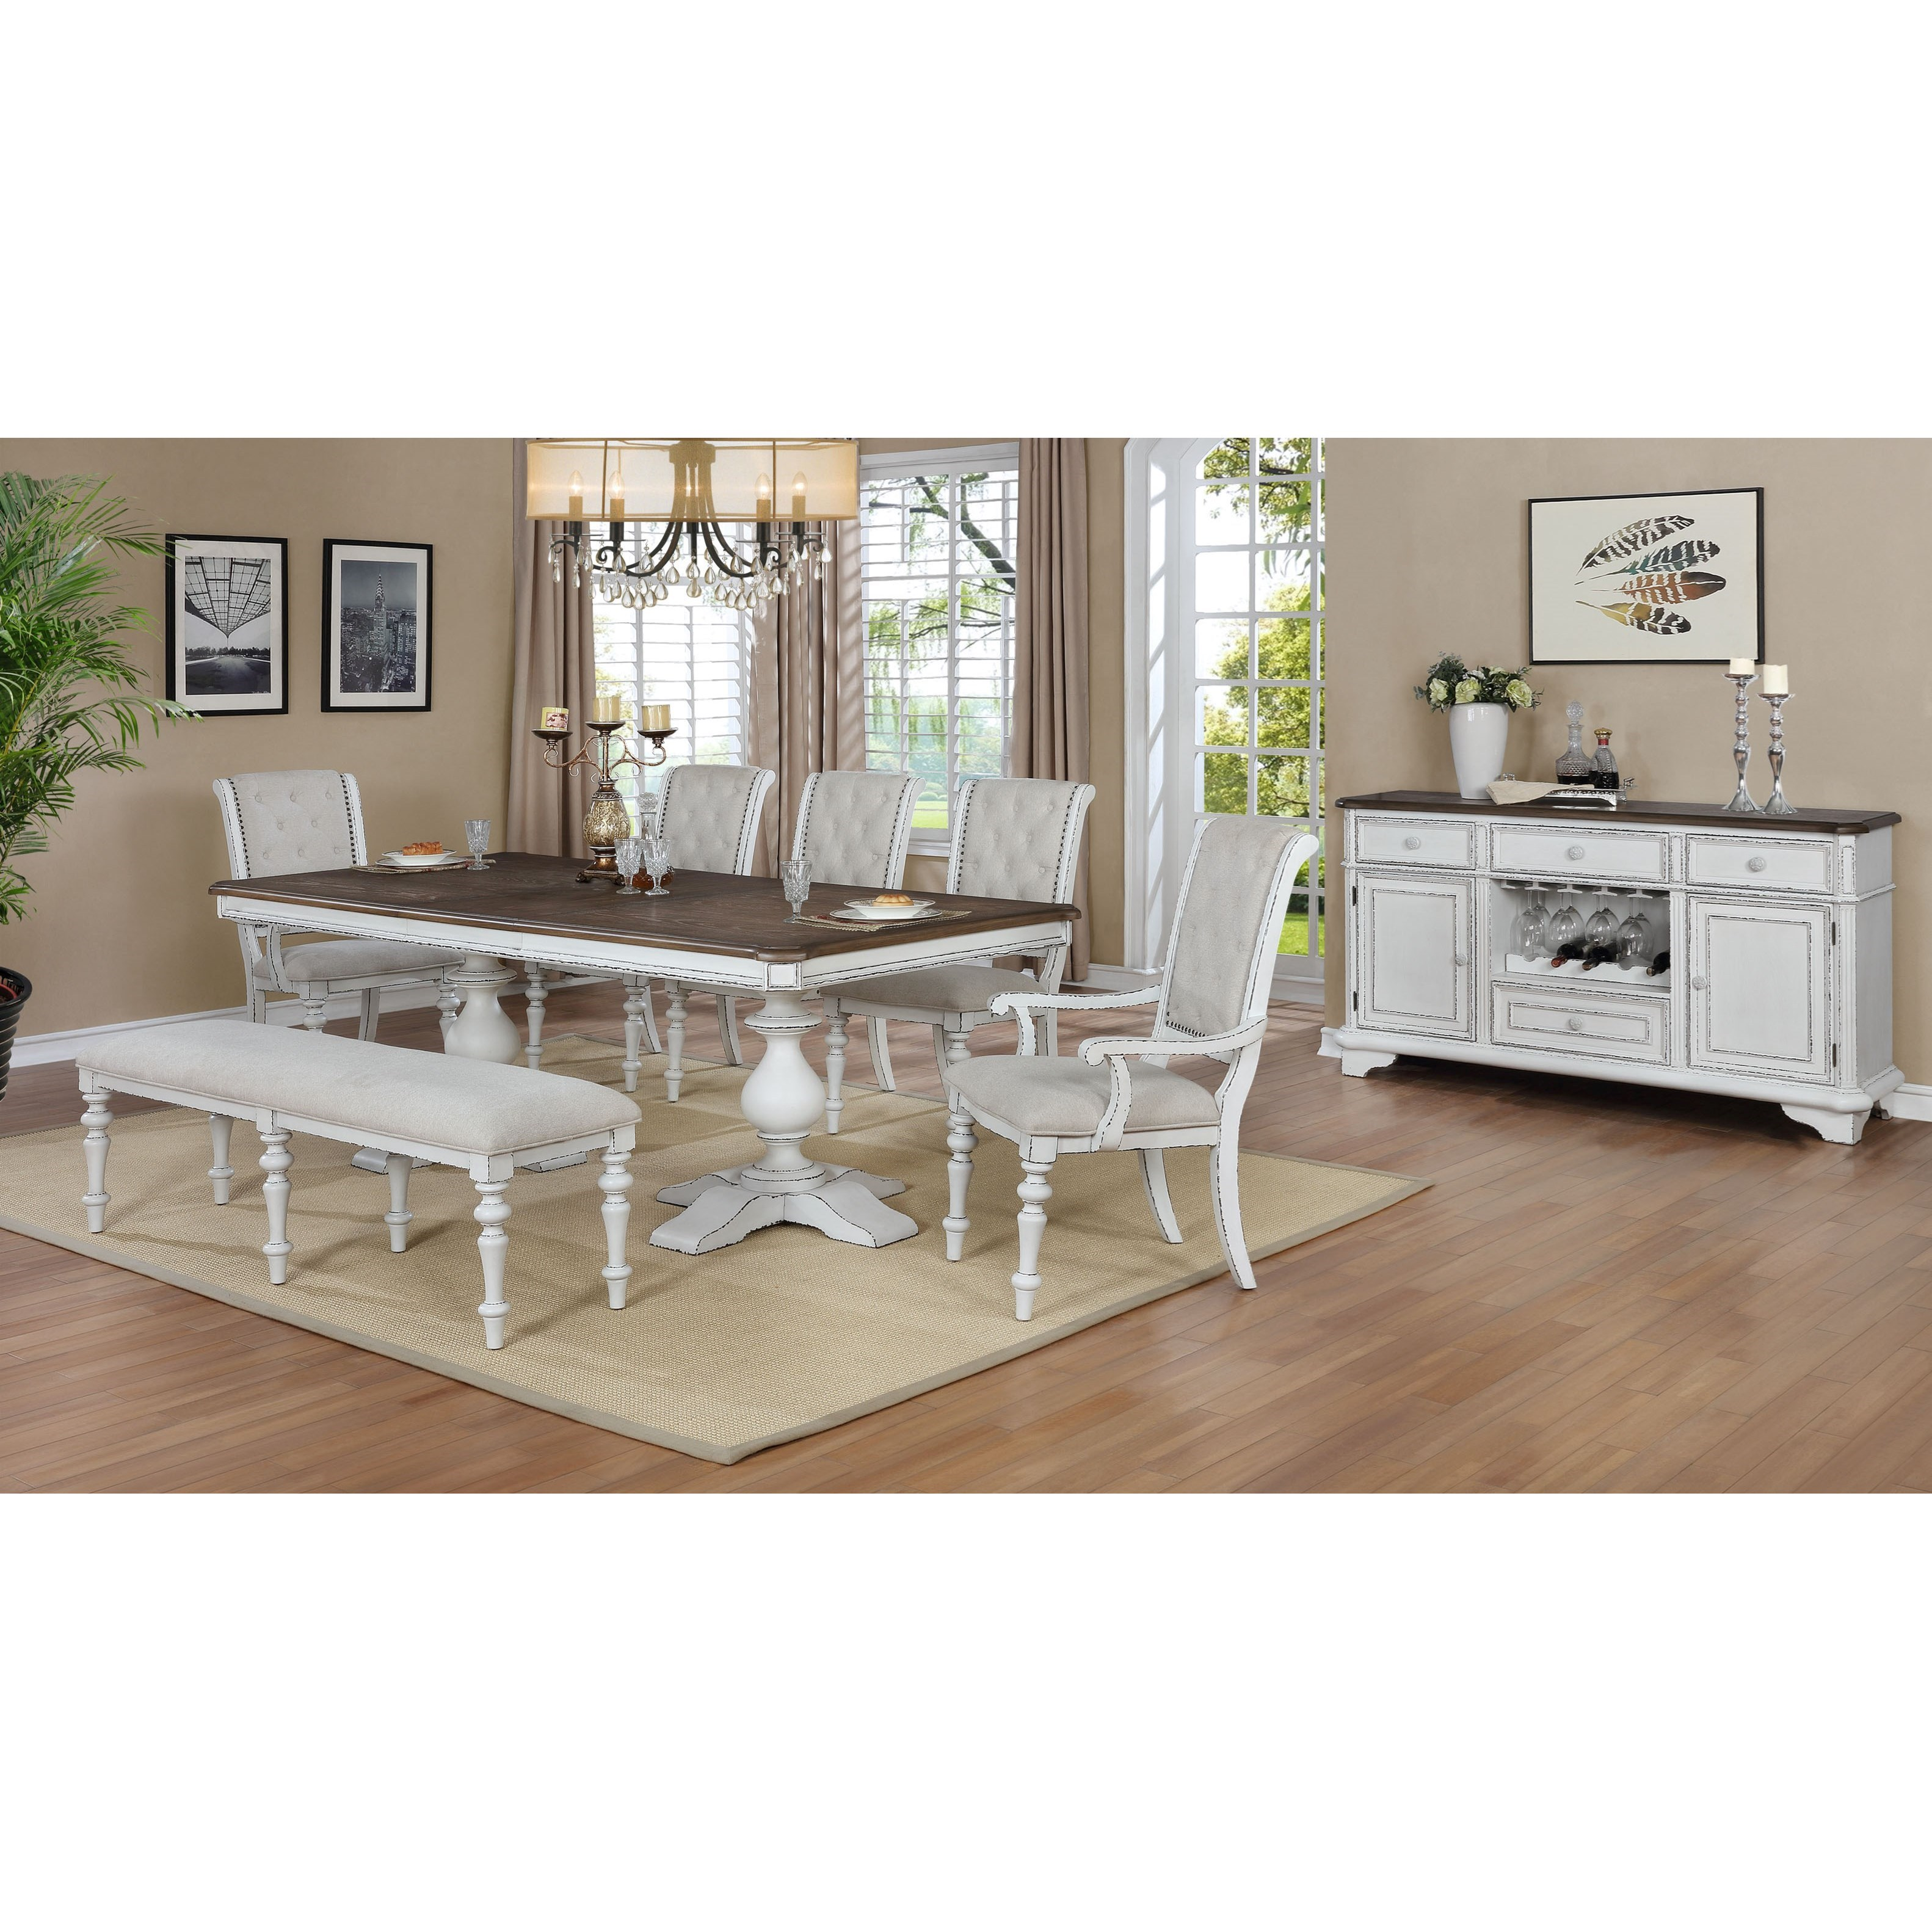 Bardot Formal Dining Room Group by Crown Mark at Northeast Factory Direct